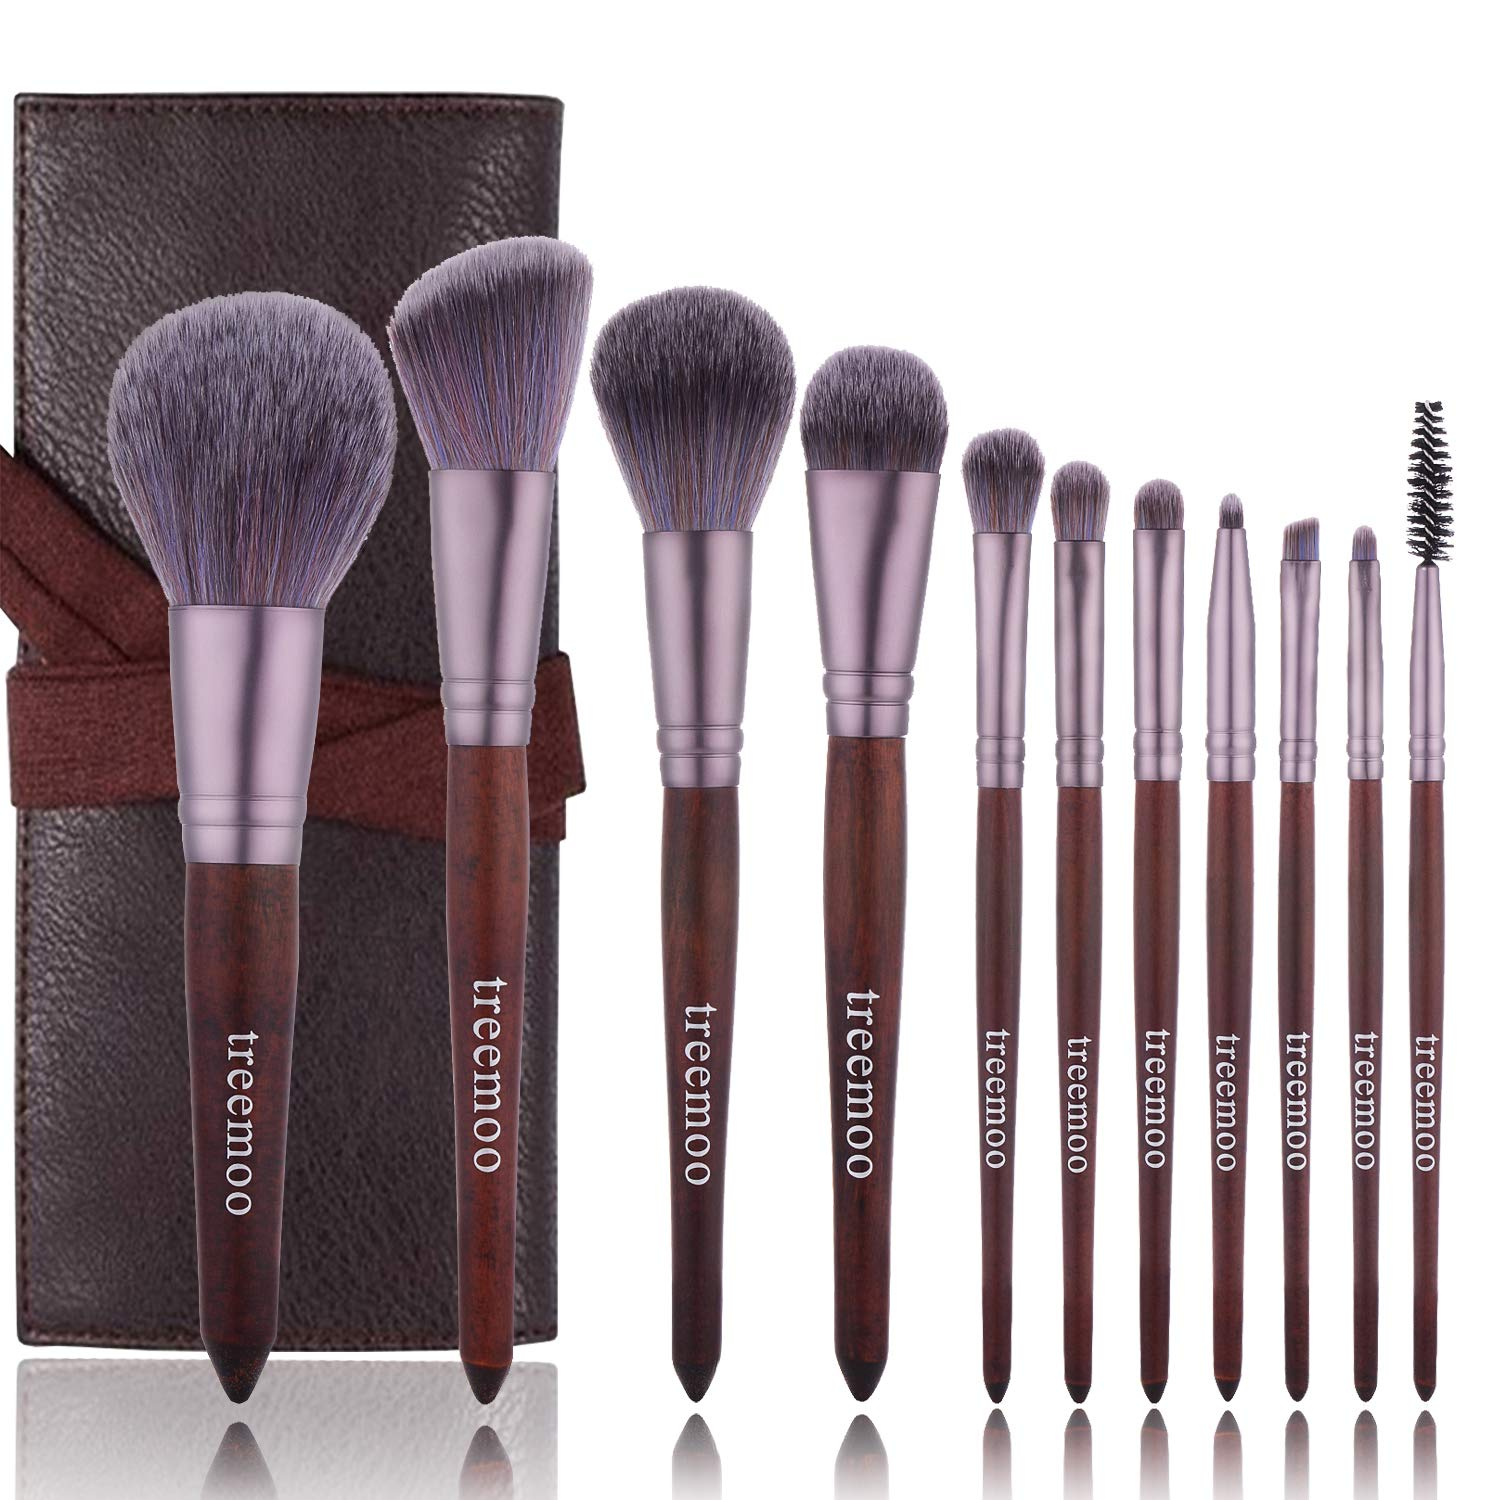 Makeup Brushes Set Treemoo 11pcs Professional Wooden Handle Brush Set Soft and Thick Bristles with Foundation Face Eyebrow Eye Shadow Brush